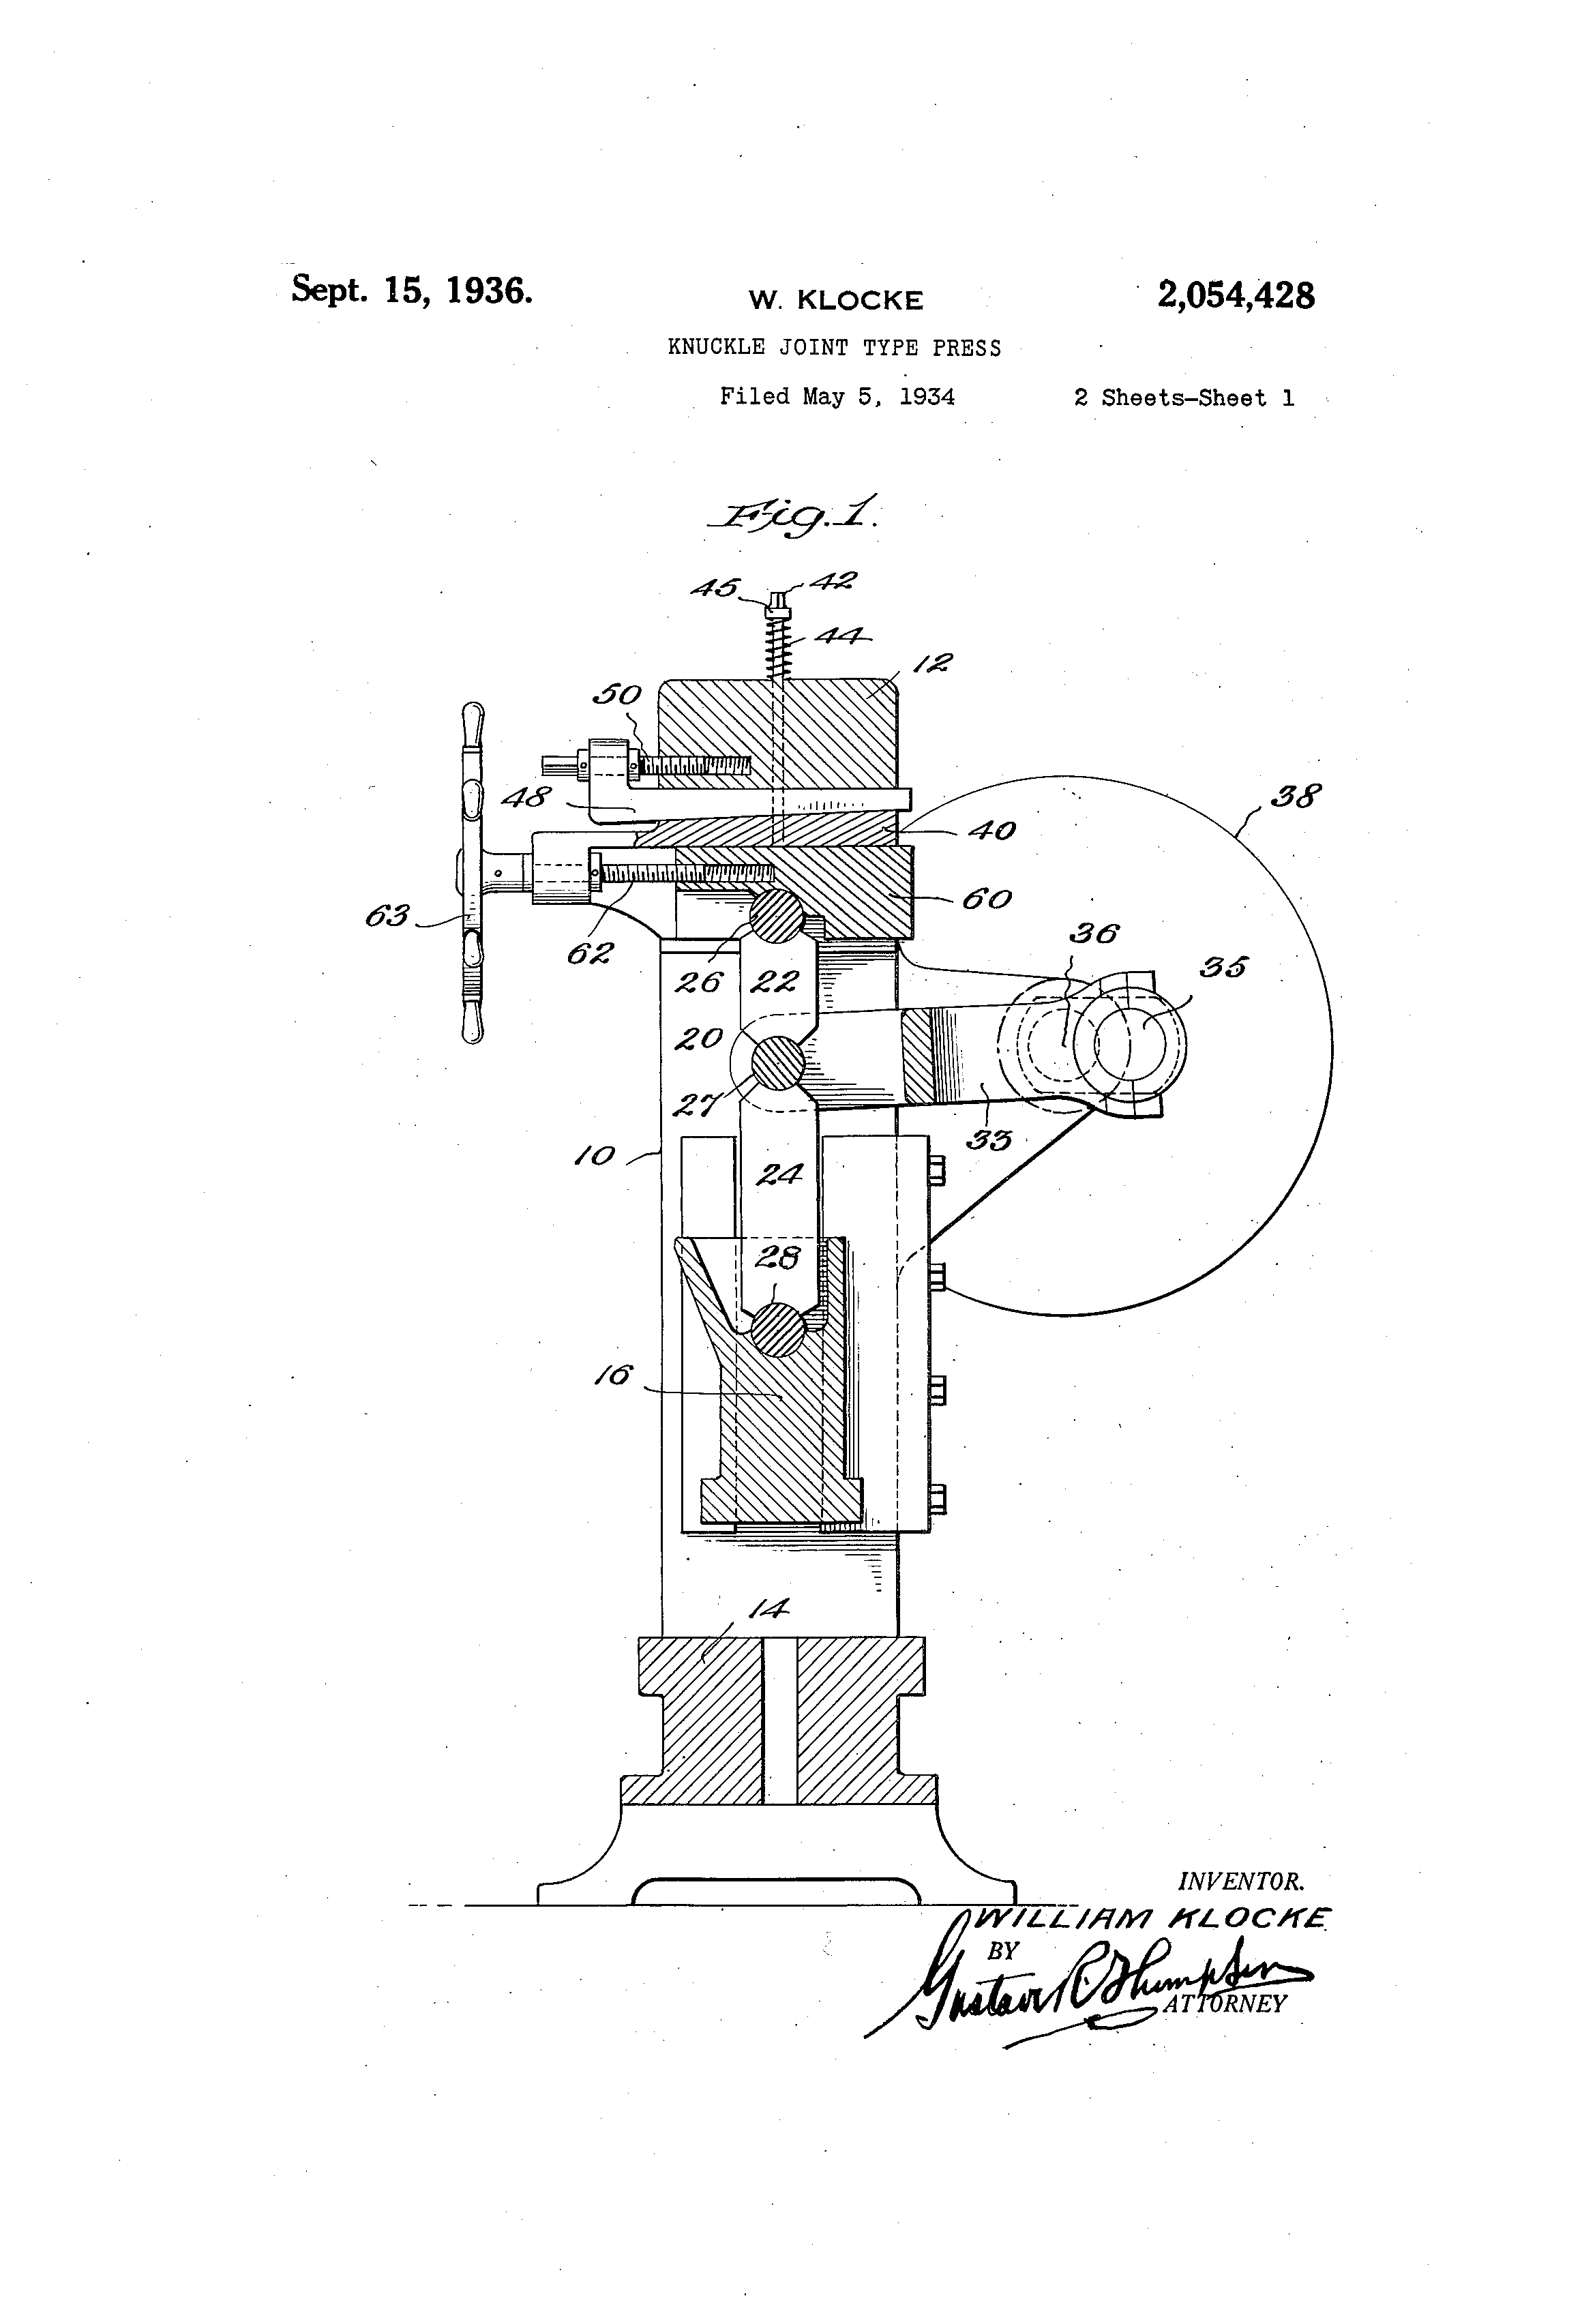 Patent Us2054428 Knuckle Joint Type Press Google Patents